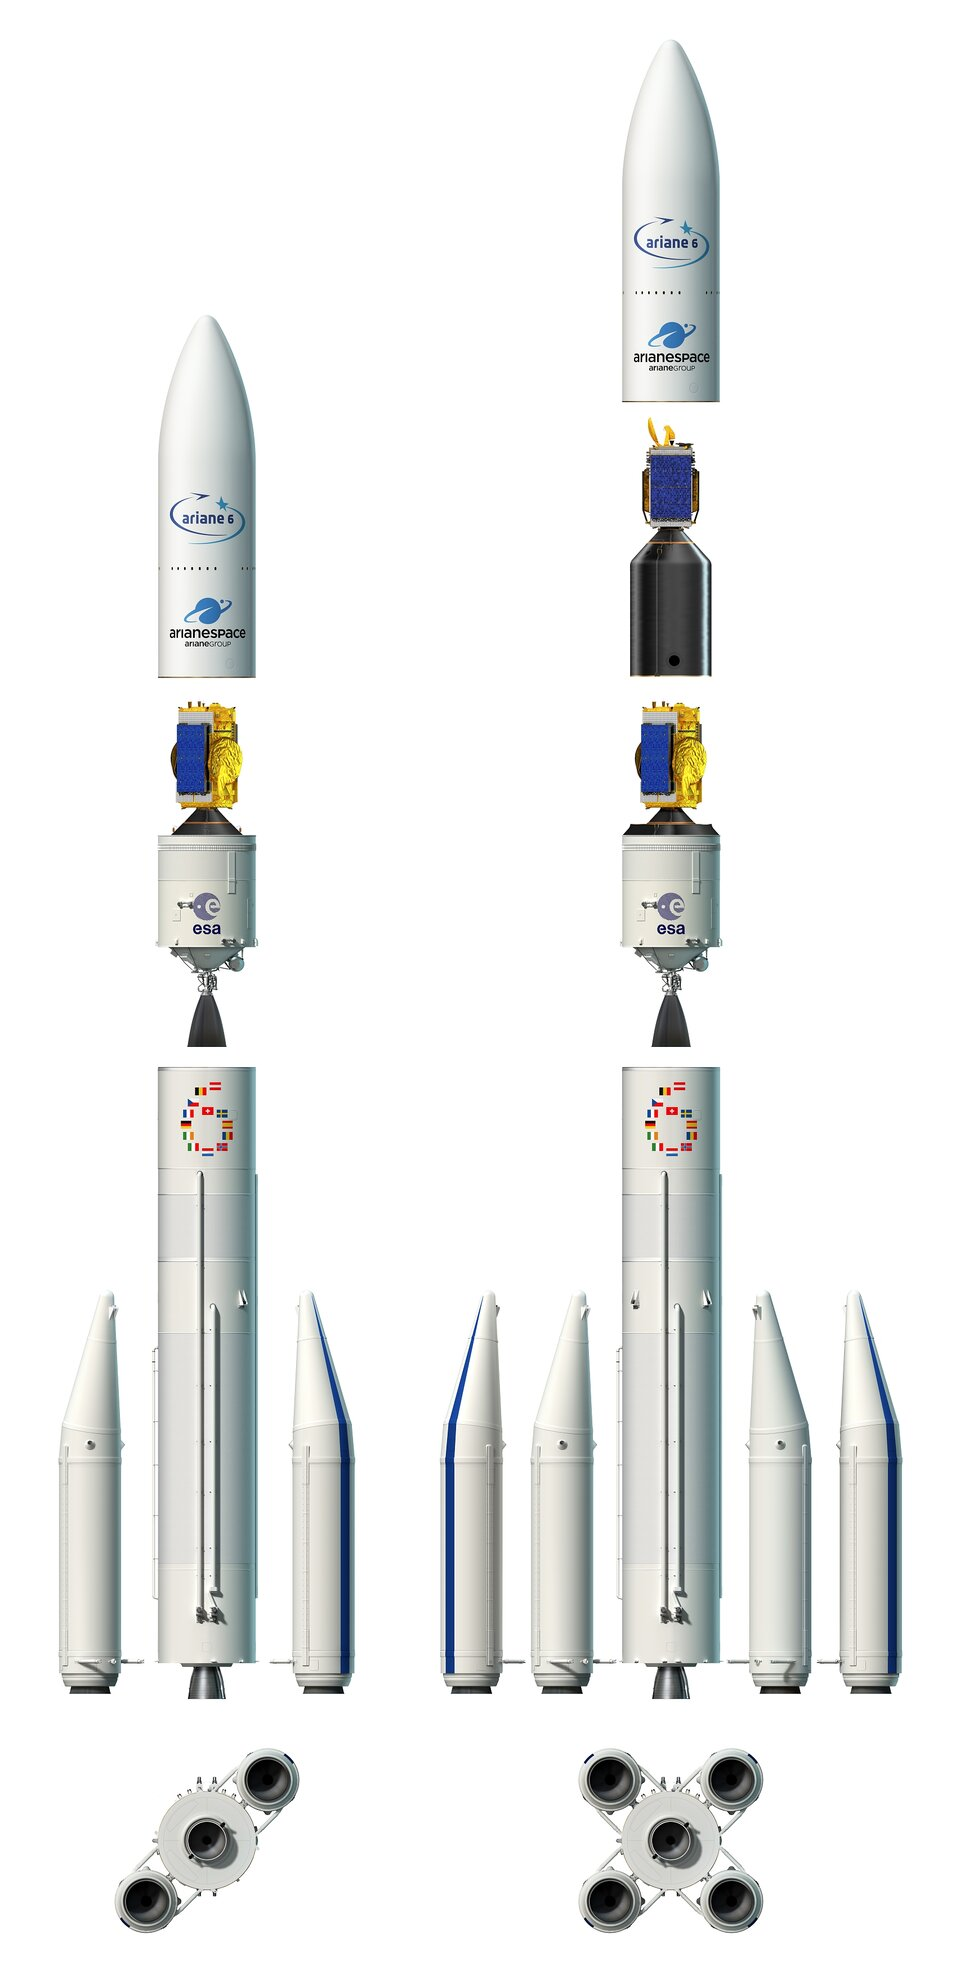 Artist's view of the two configurations of Ariane 6